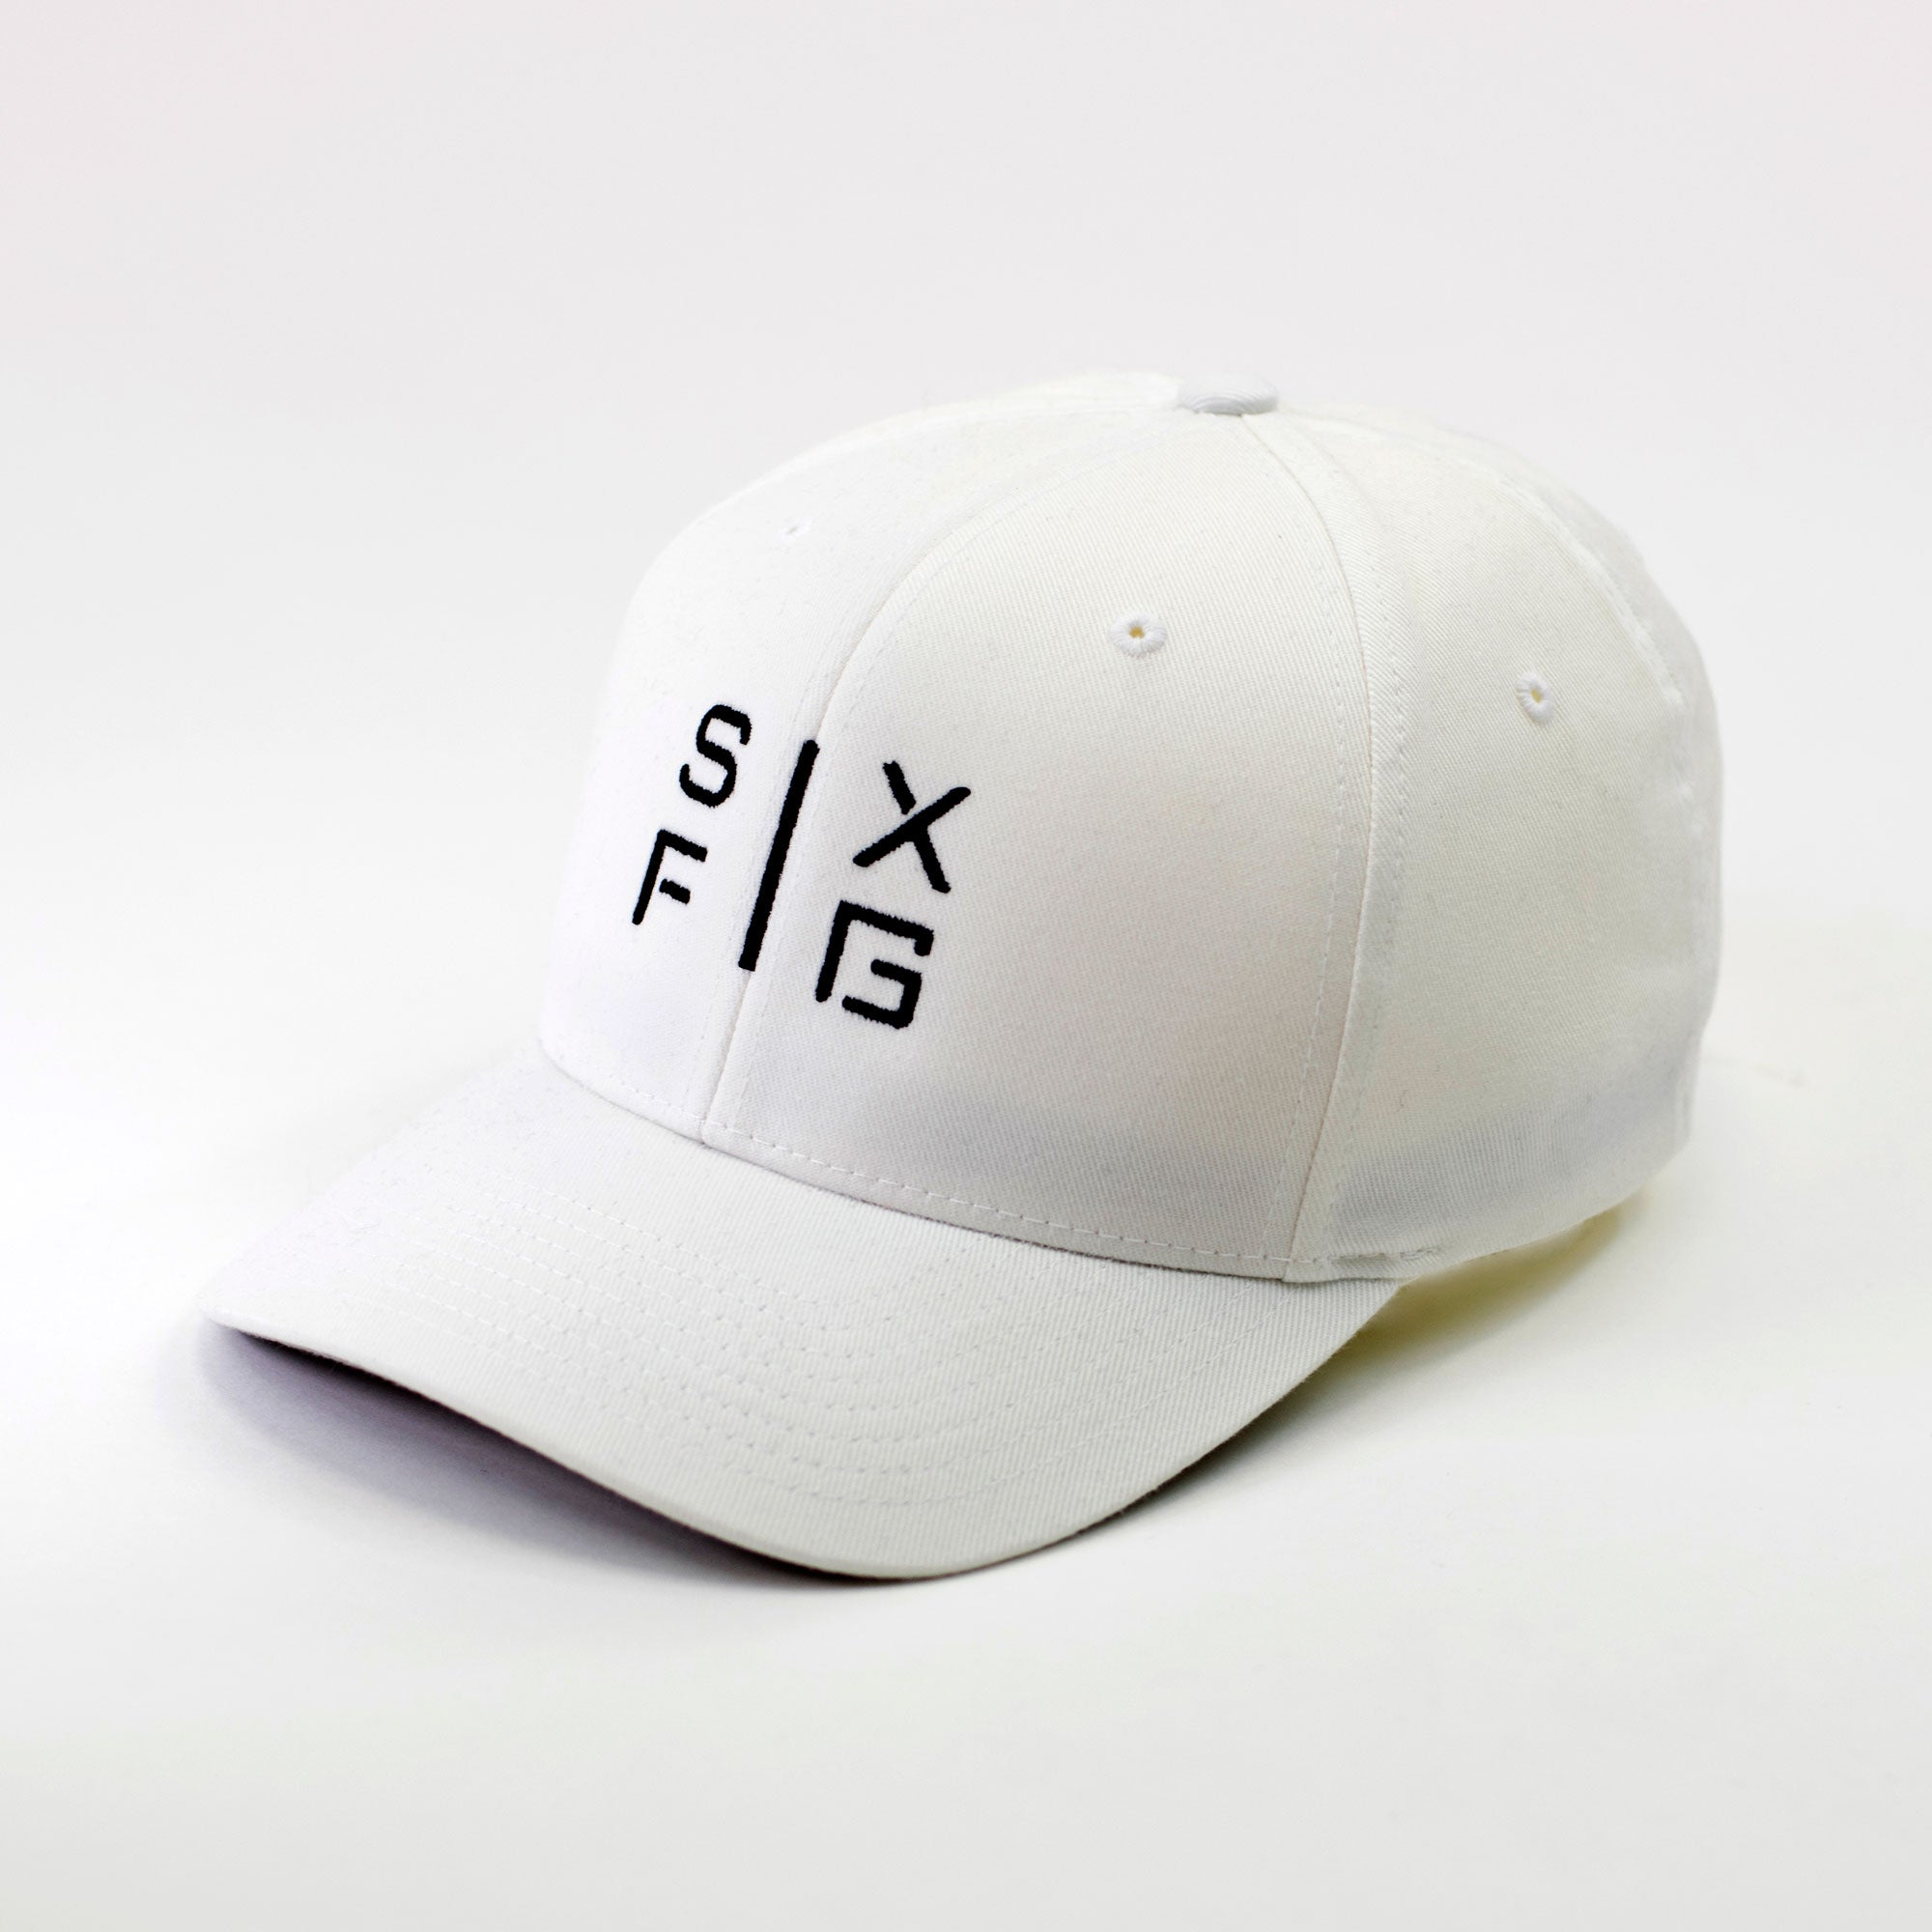 SIX FIG Baseball Cap - White + Black - Six Figures Official